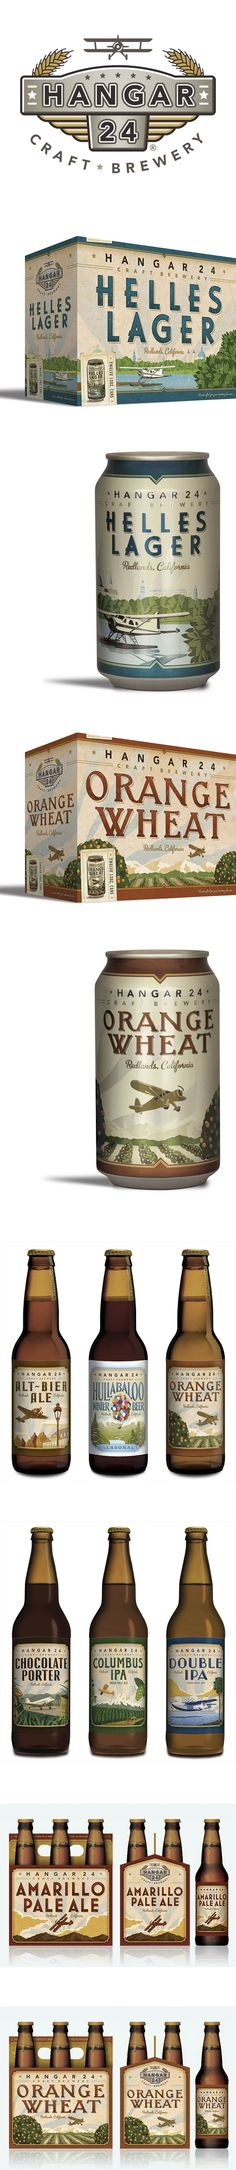 Hangar 24 Craft Brewery *** Hangar 24 Craft Brewery is located right next to a municipal airport and is surrounded by acres of orange groves in Redlands, California — it's also owned by a private pilot who has a passion for vintage airplanes. Beer Packaging, Beverage Packaging, Brand Packaging, Label Design, Package Design, Redlands California, Brand Identity, Branding, Aviation Decor